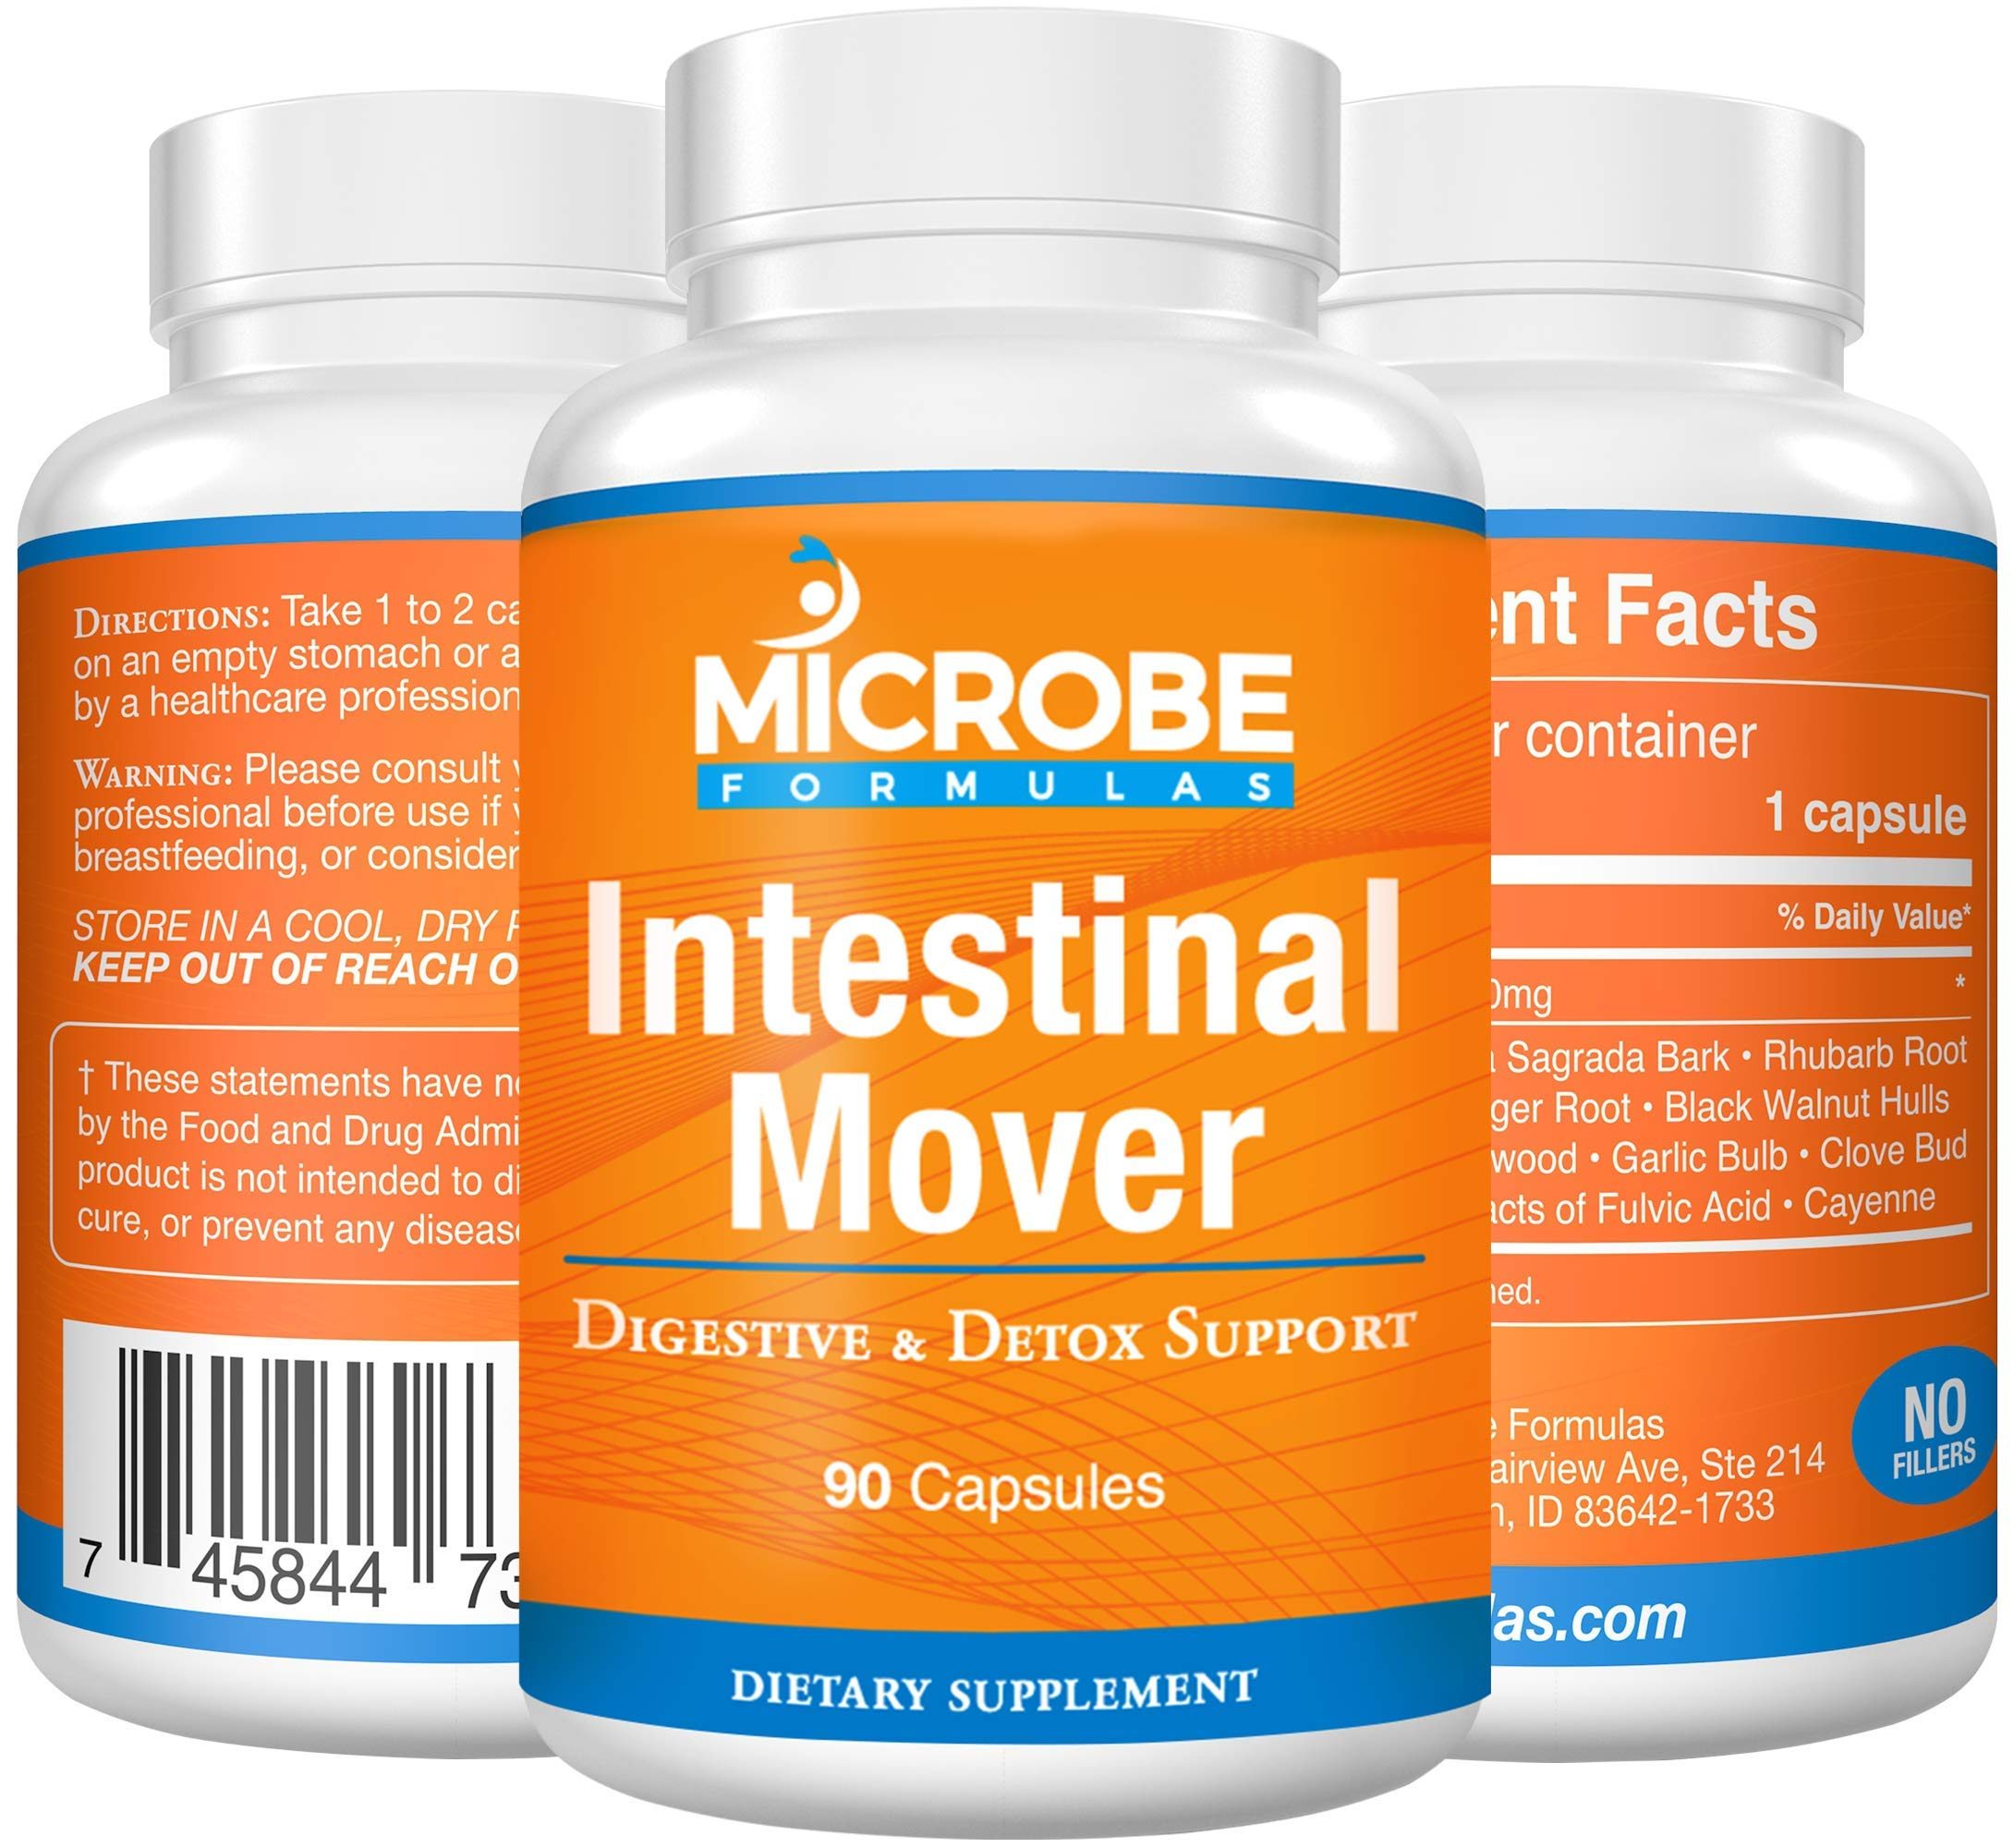 Microbe Formulas: Constipation Relief - Intestinal Mover - 90 Capsules - All Natural Formula - Offers Digestive Detox Support, Provides Gentle Constipation Relief, Promotes Proper Bowel Function by Microbe Formulas